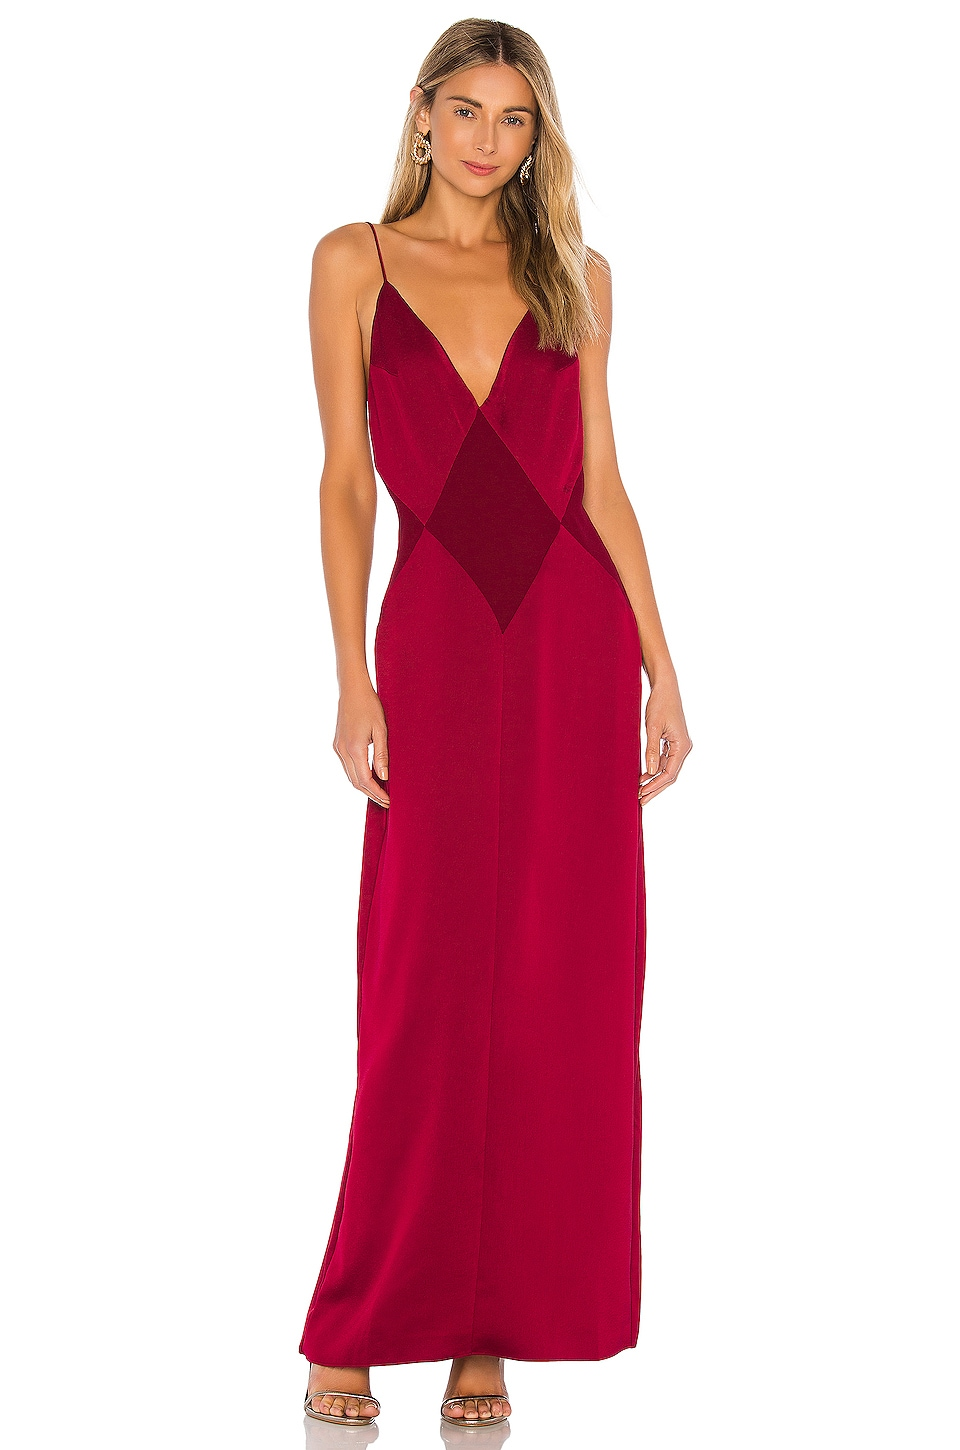 L'Academie The Joelle Maxi Dress in Rumba Red